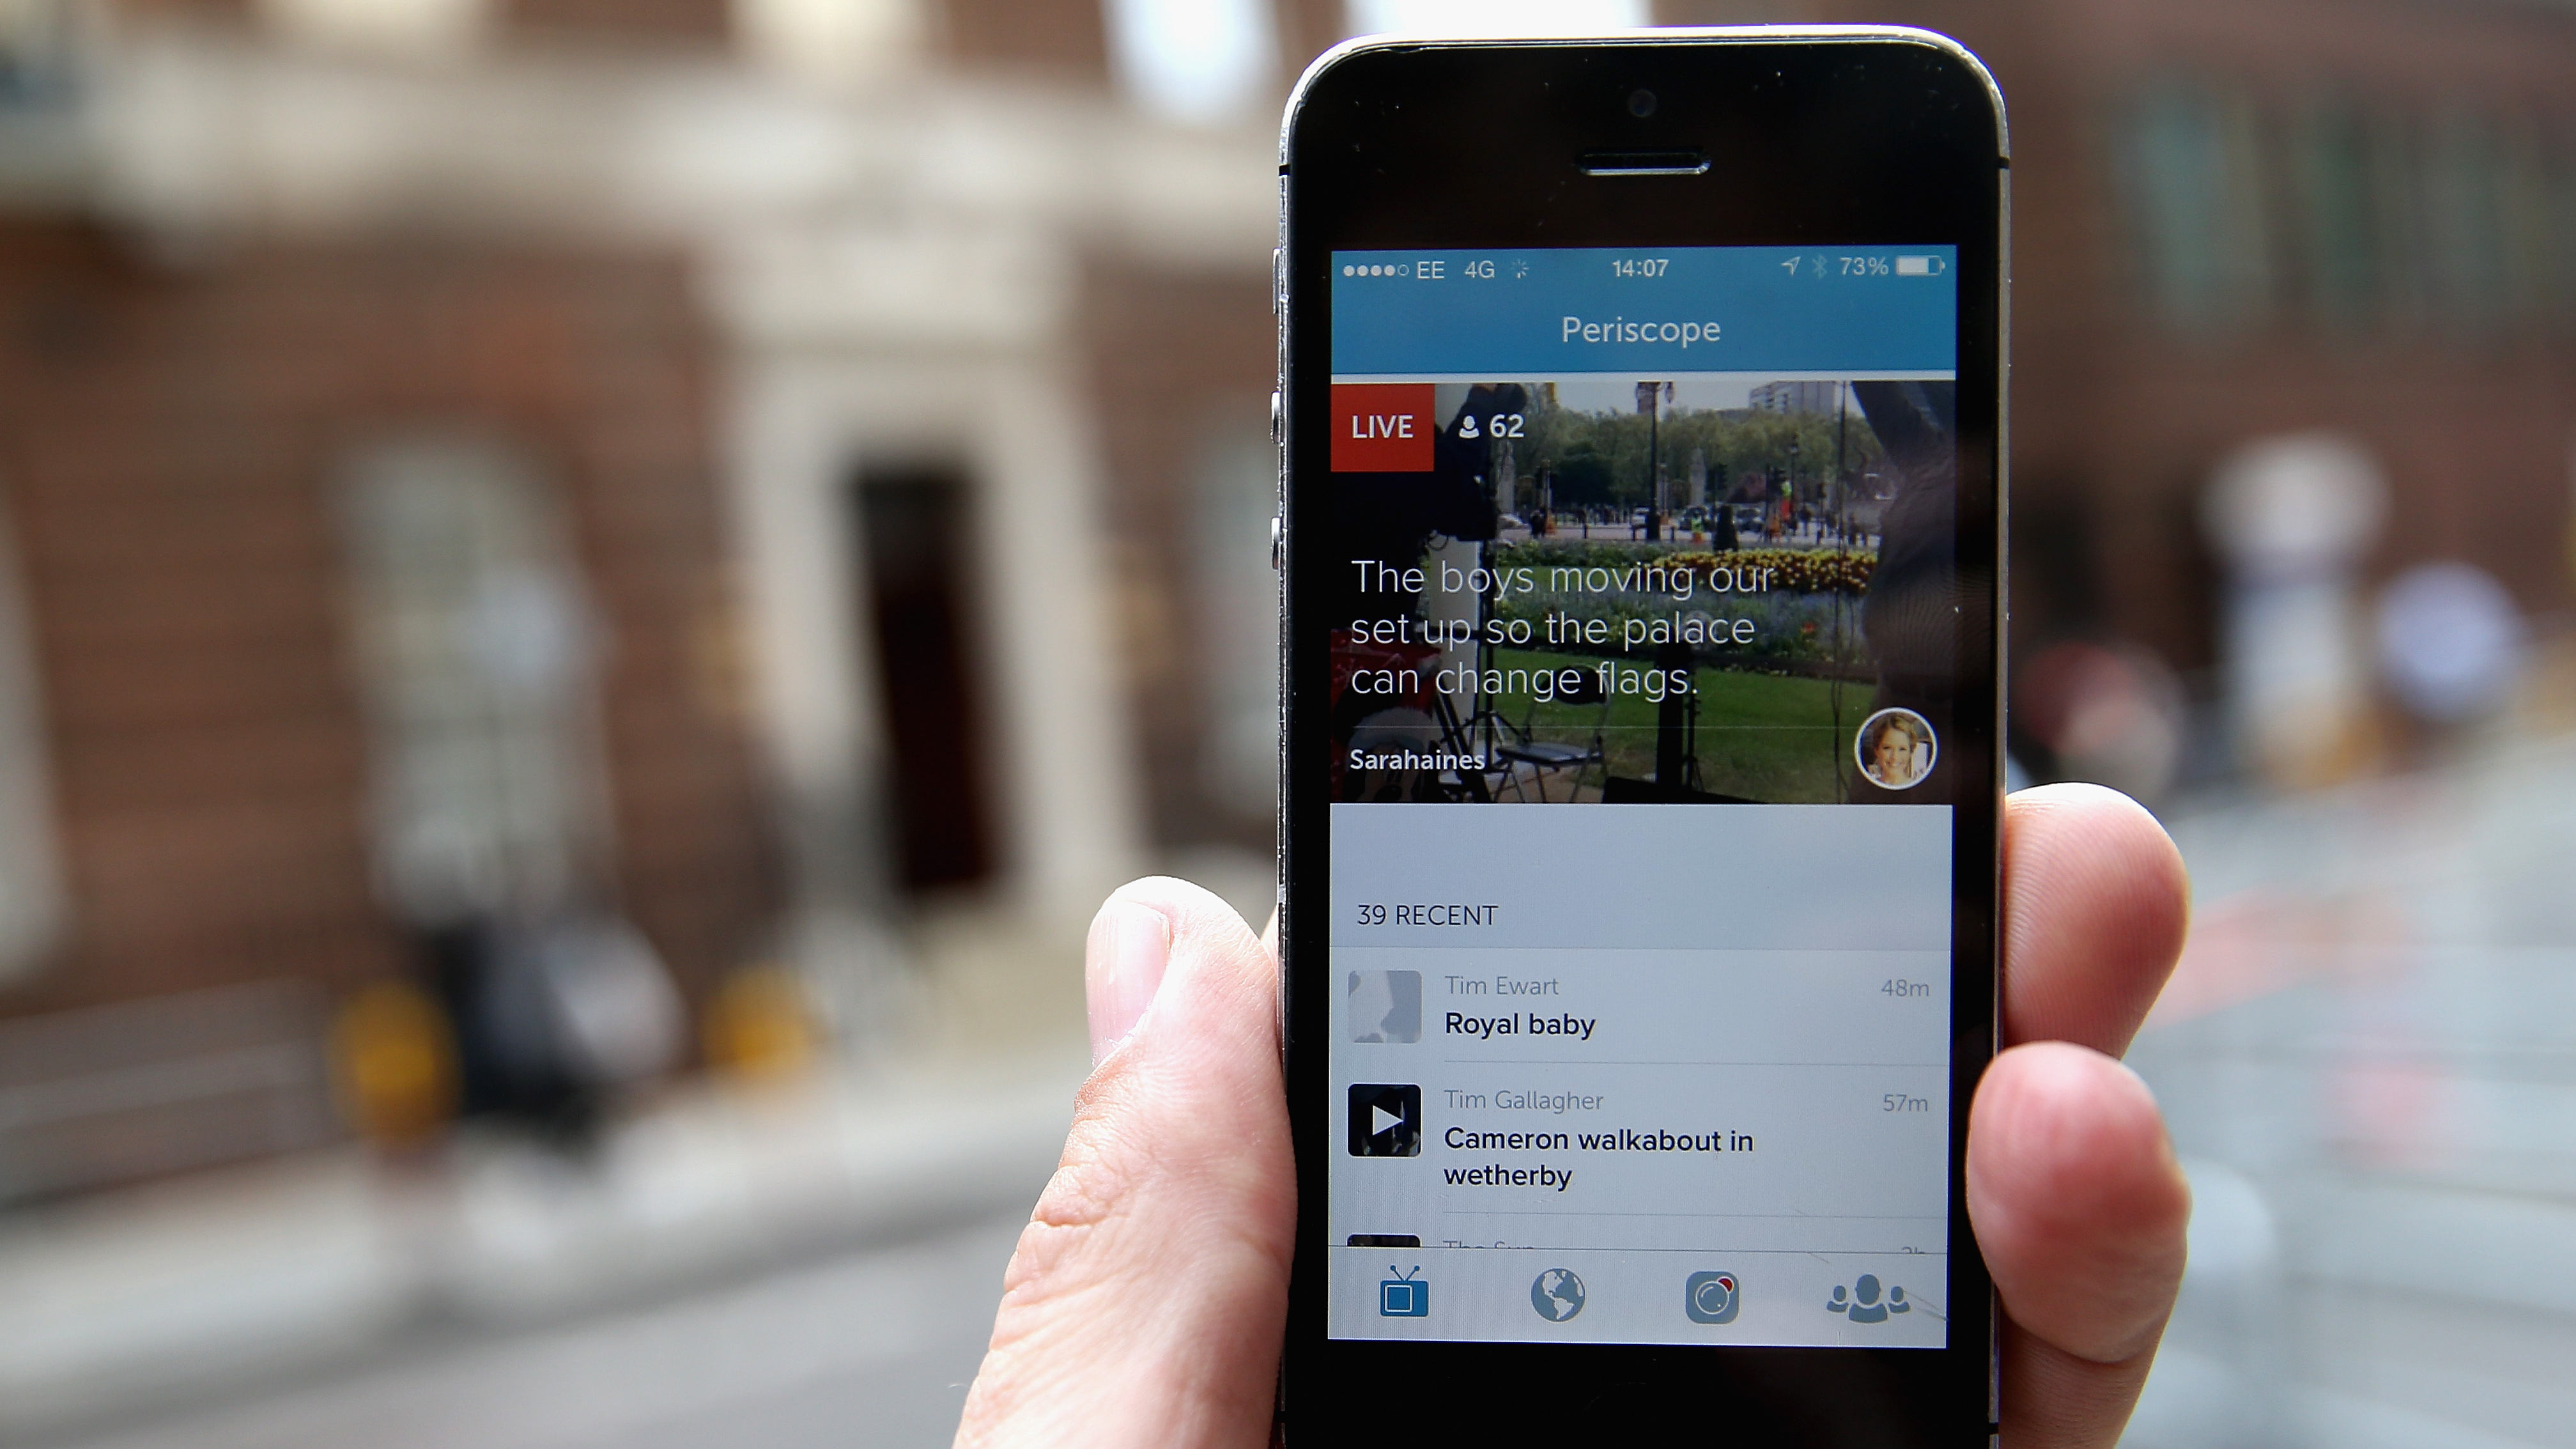 Live Video Apps Like Periscope Make Life Even Less Private